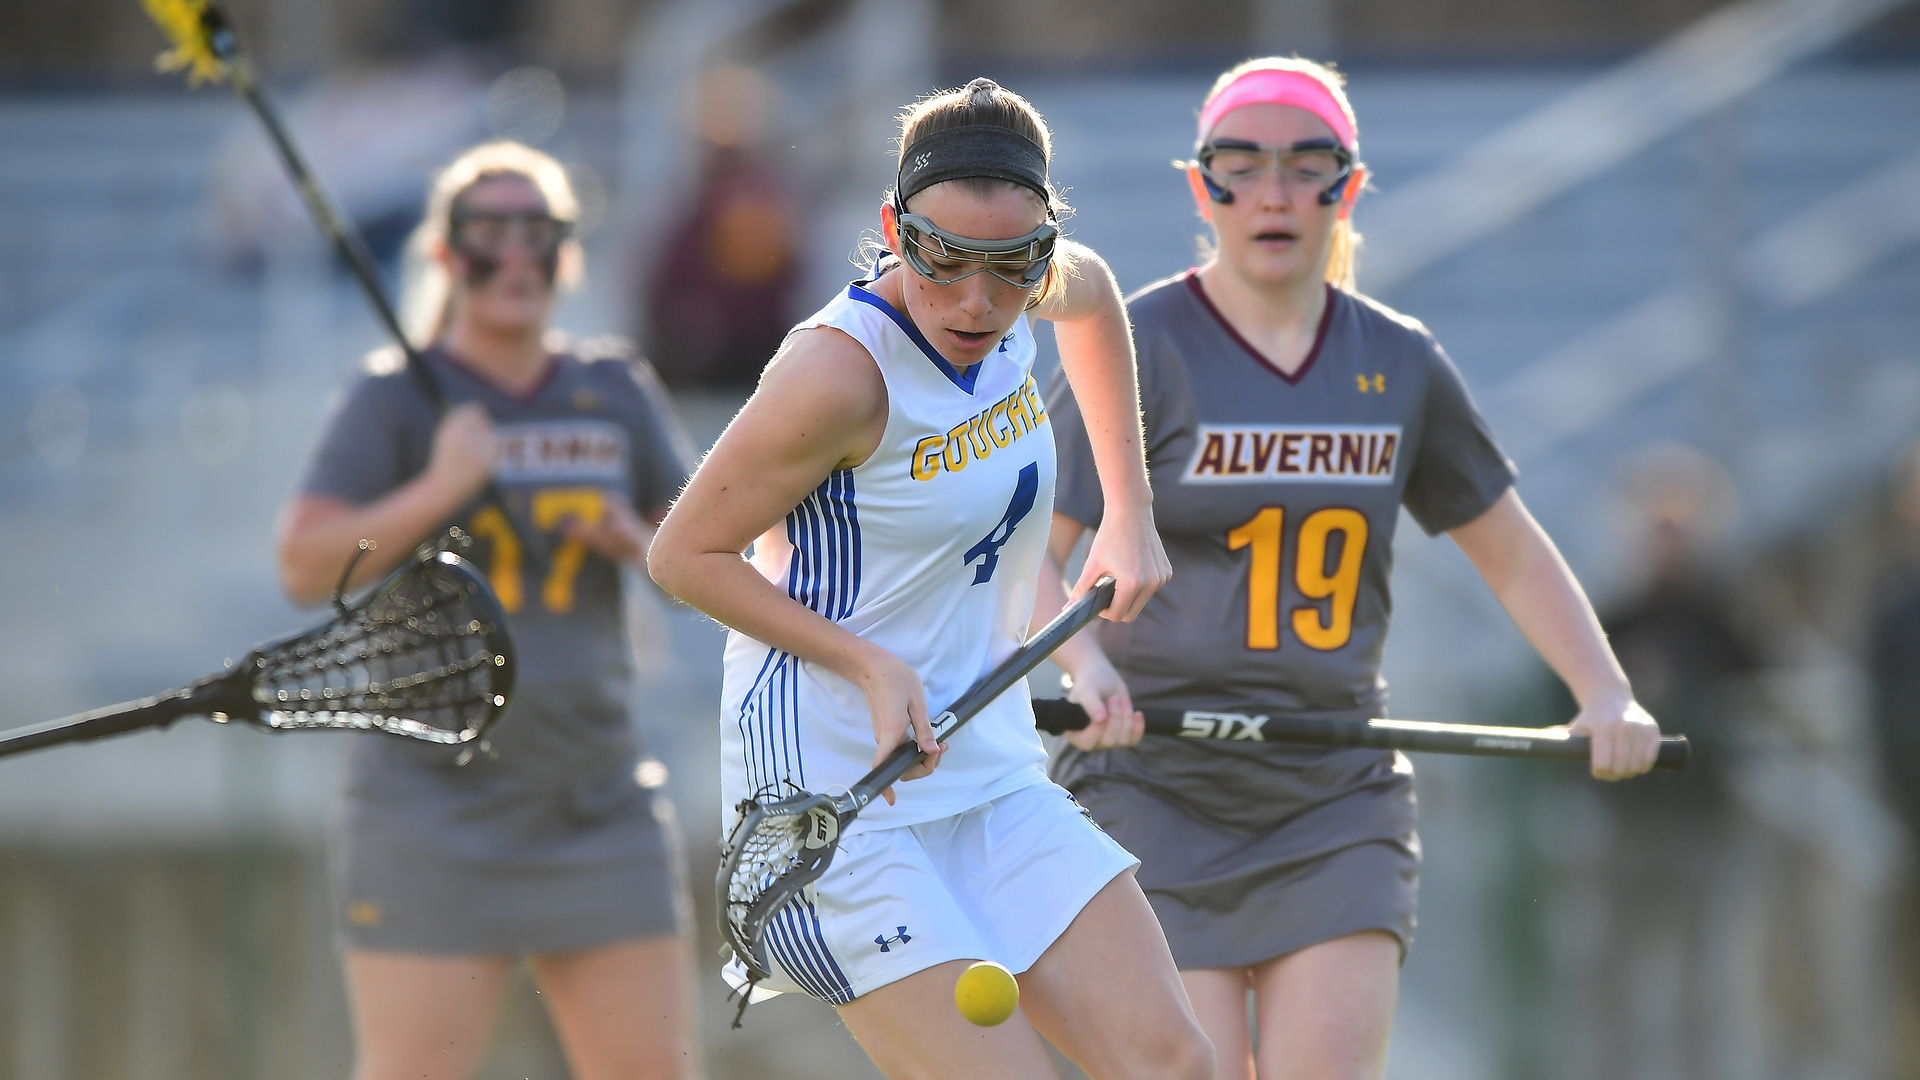 Goucher Women's Lacrosse's Rally Falls Short Against Alvernia